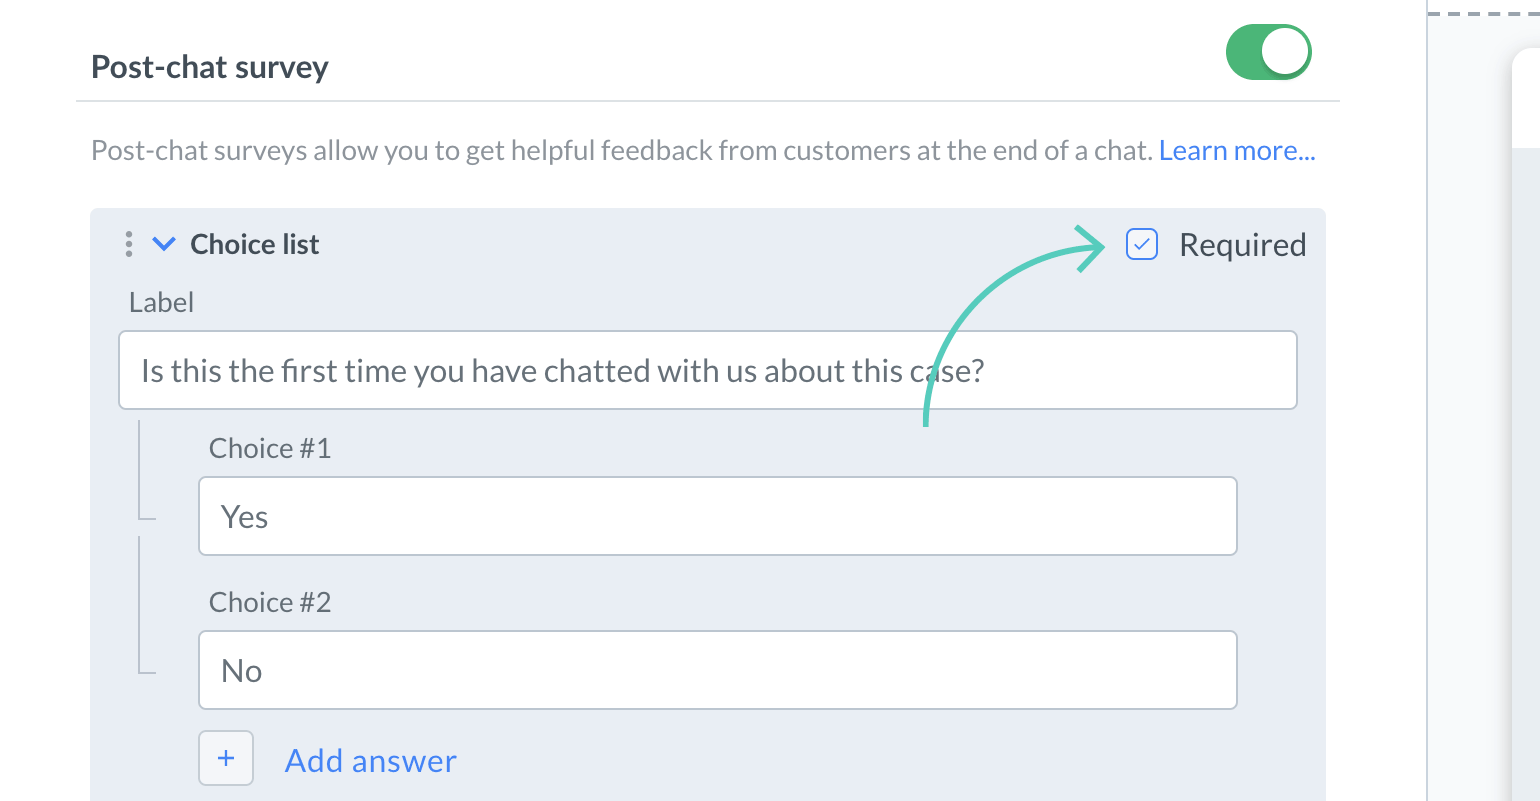 Make a field required in post-chat survey